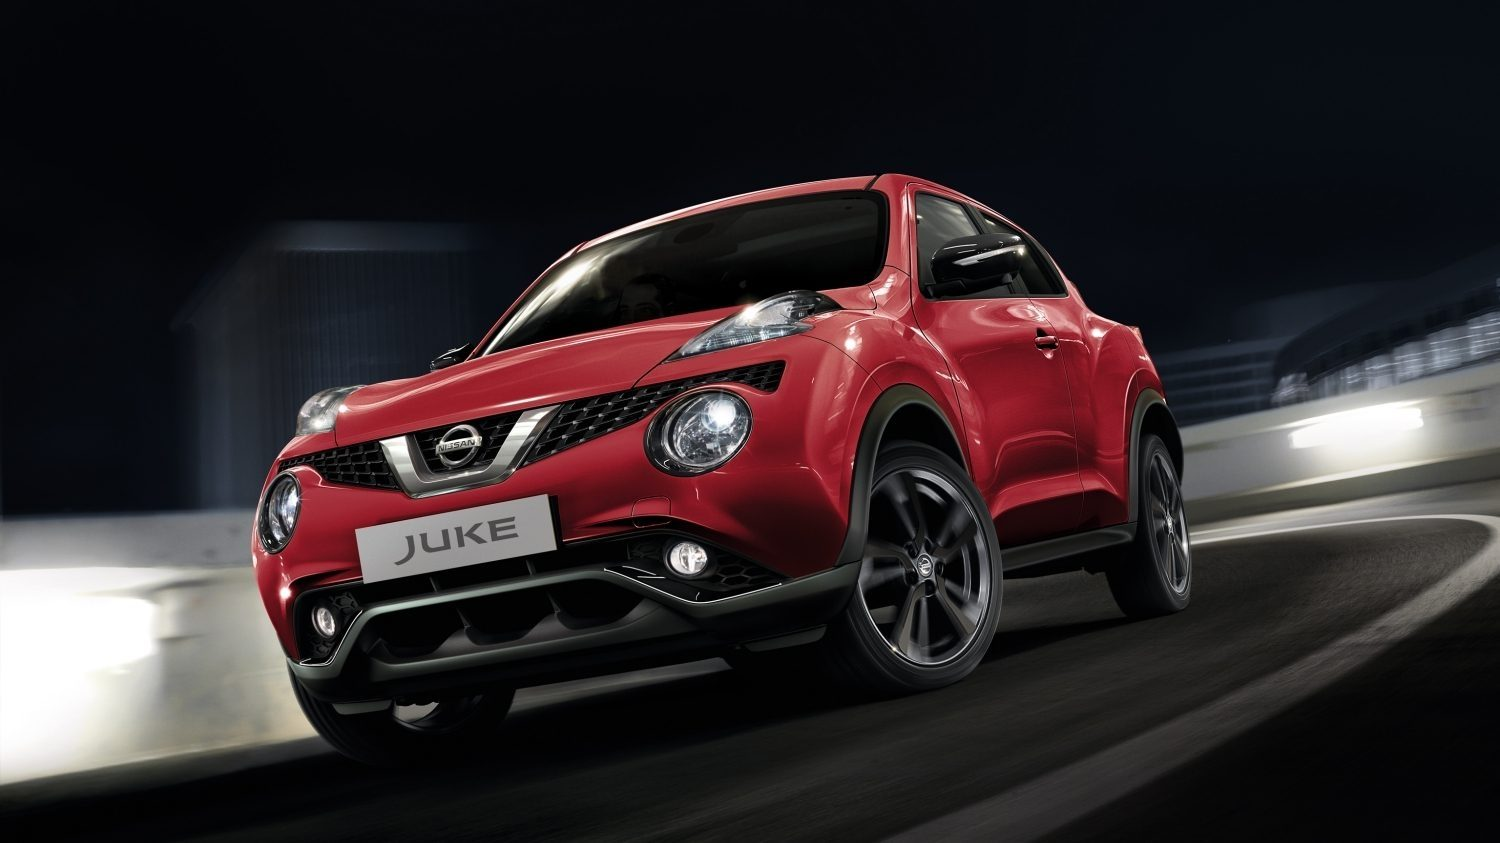 NISSAN Juke - 3/4 front view